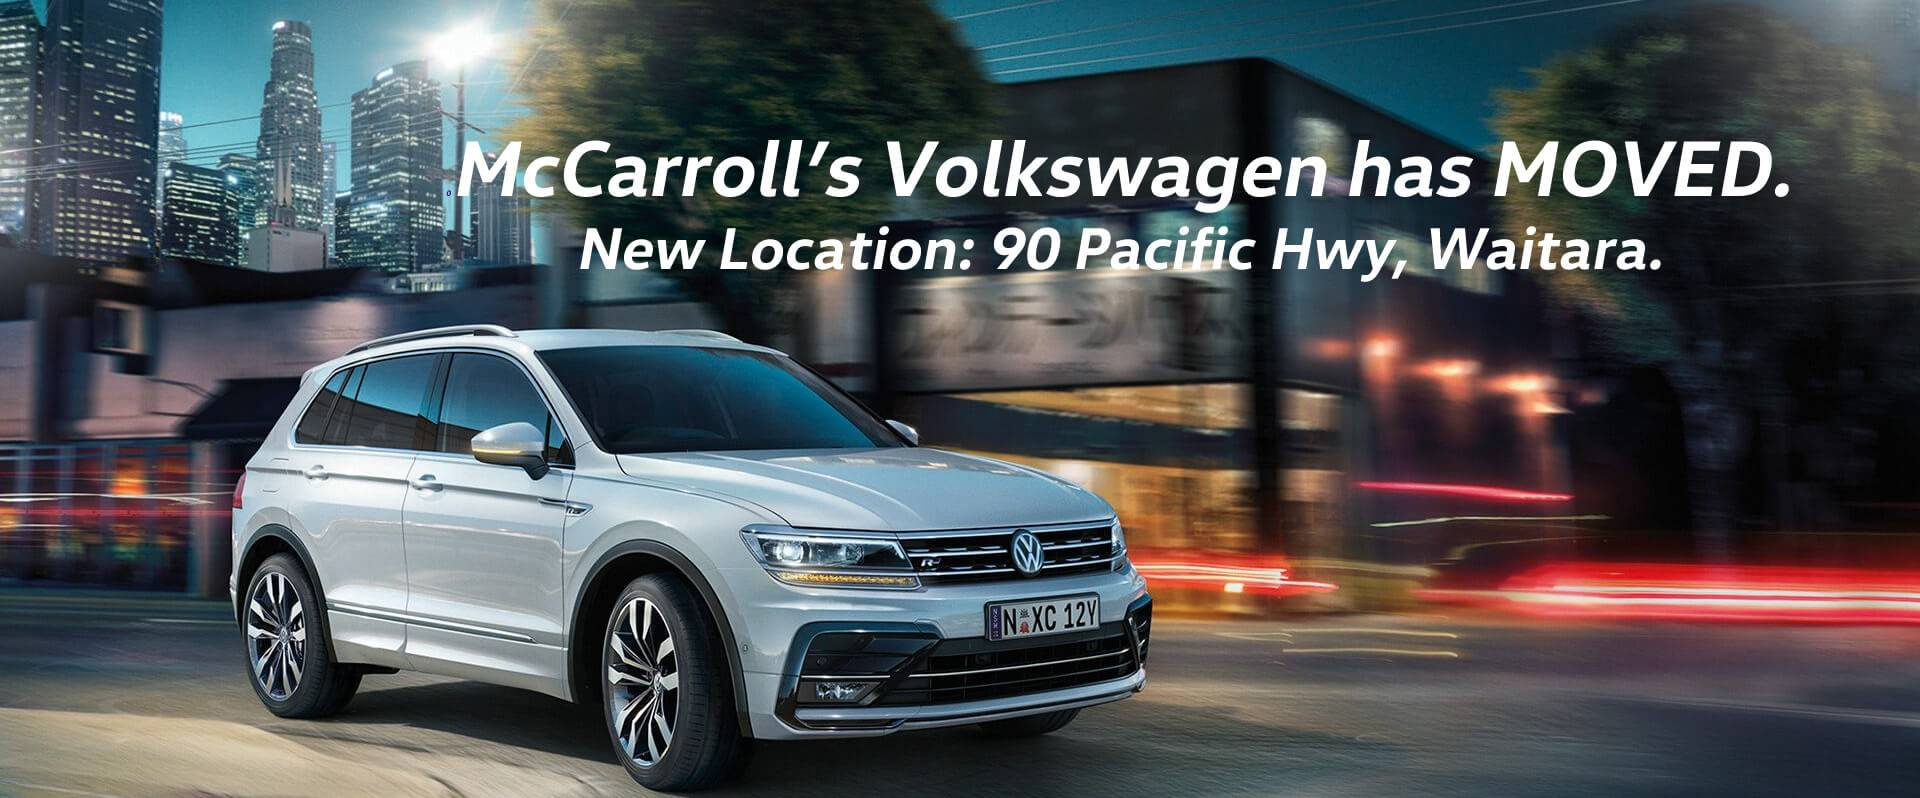 McCarrolls Volkswagen has moved location